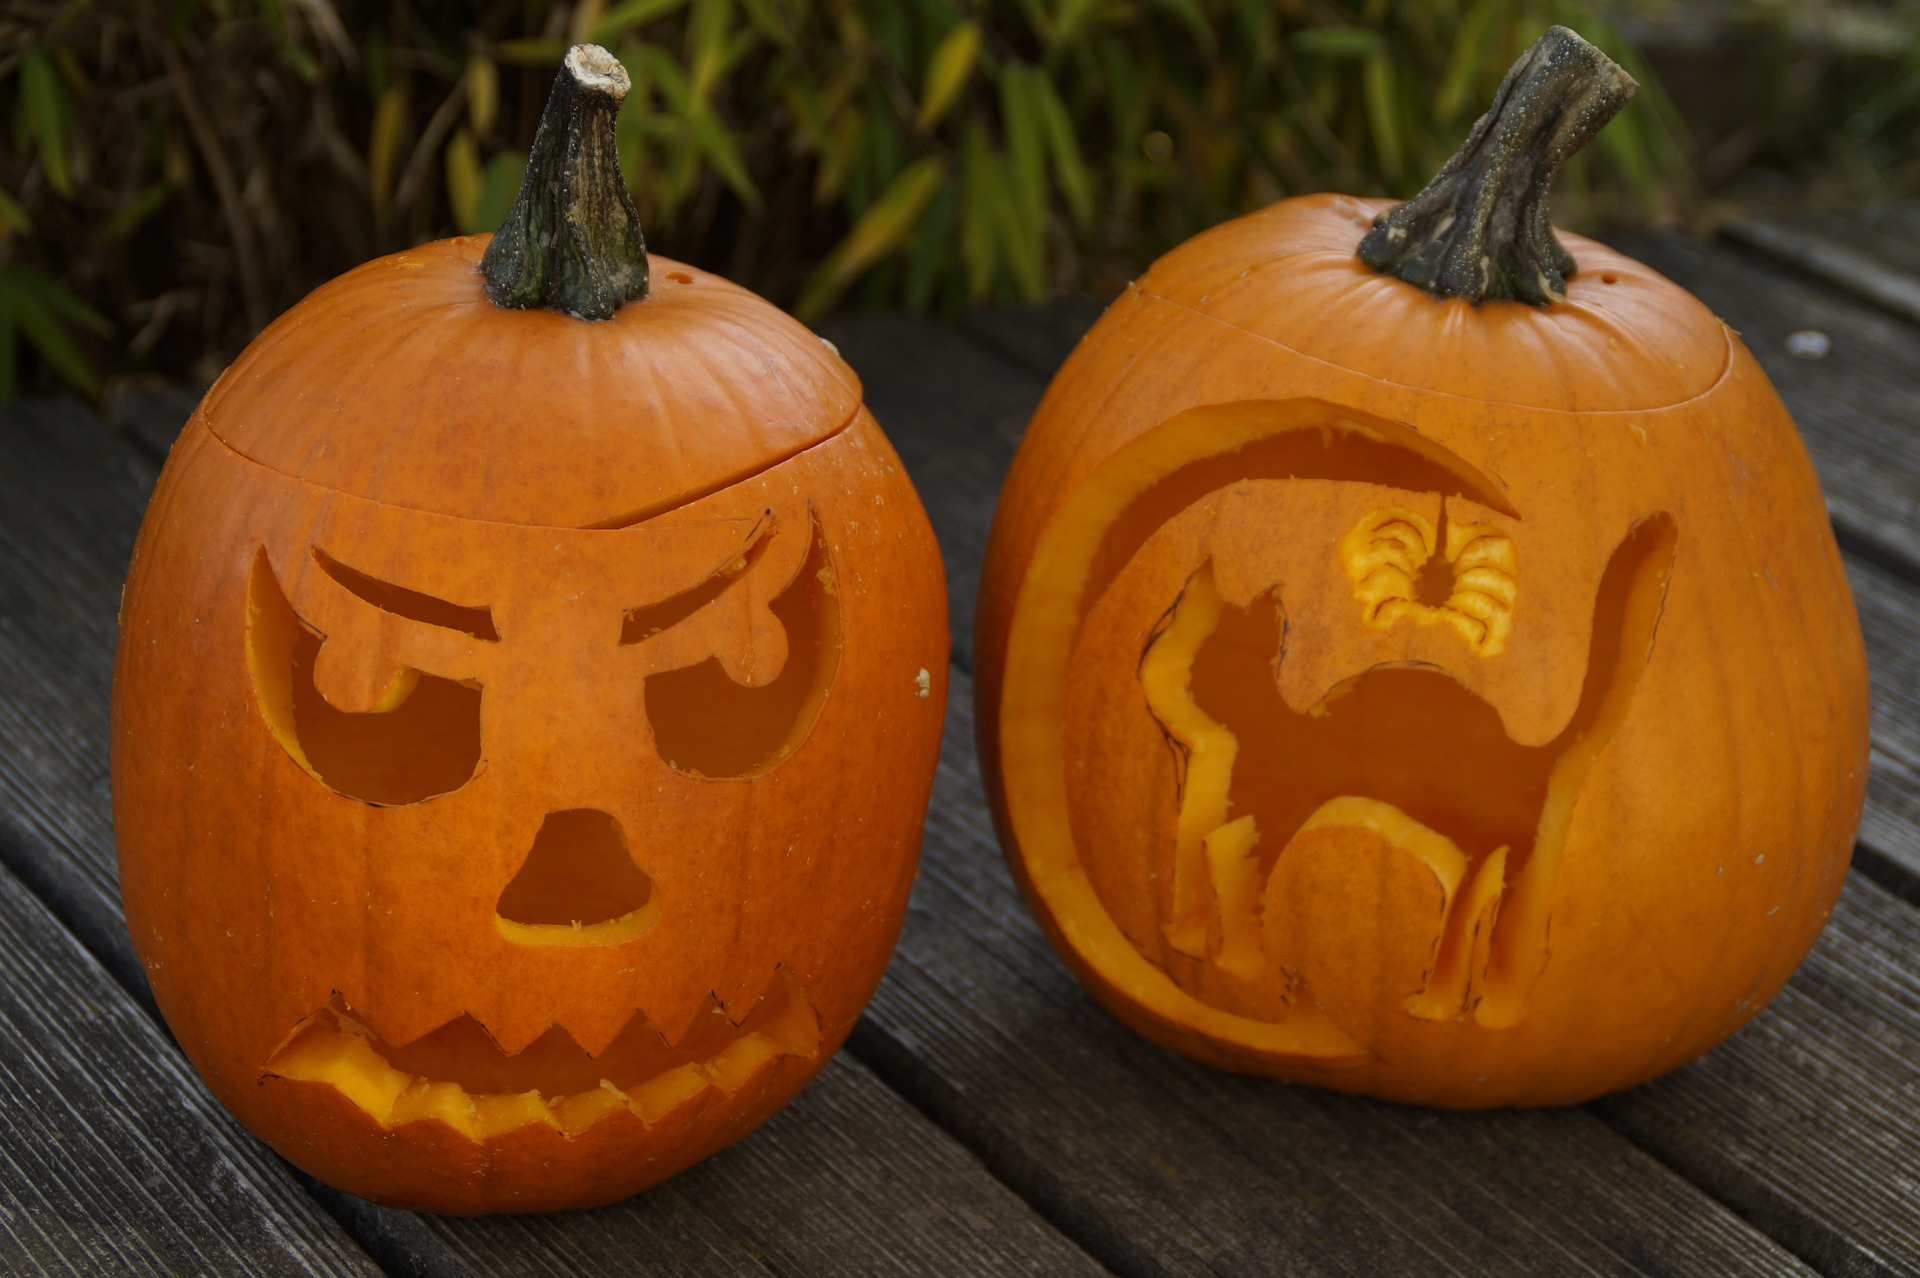 Two carved pumpkins for blog about preventing Halloween injuries